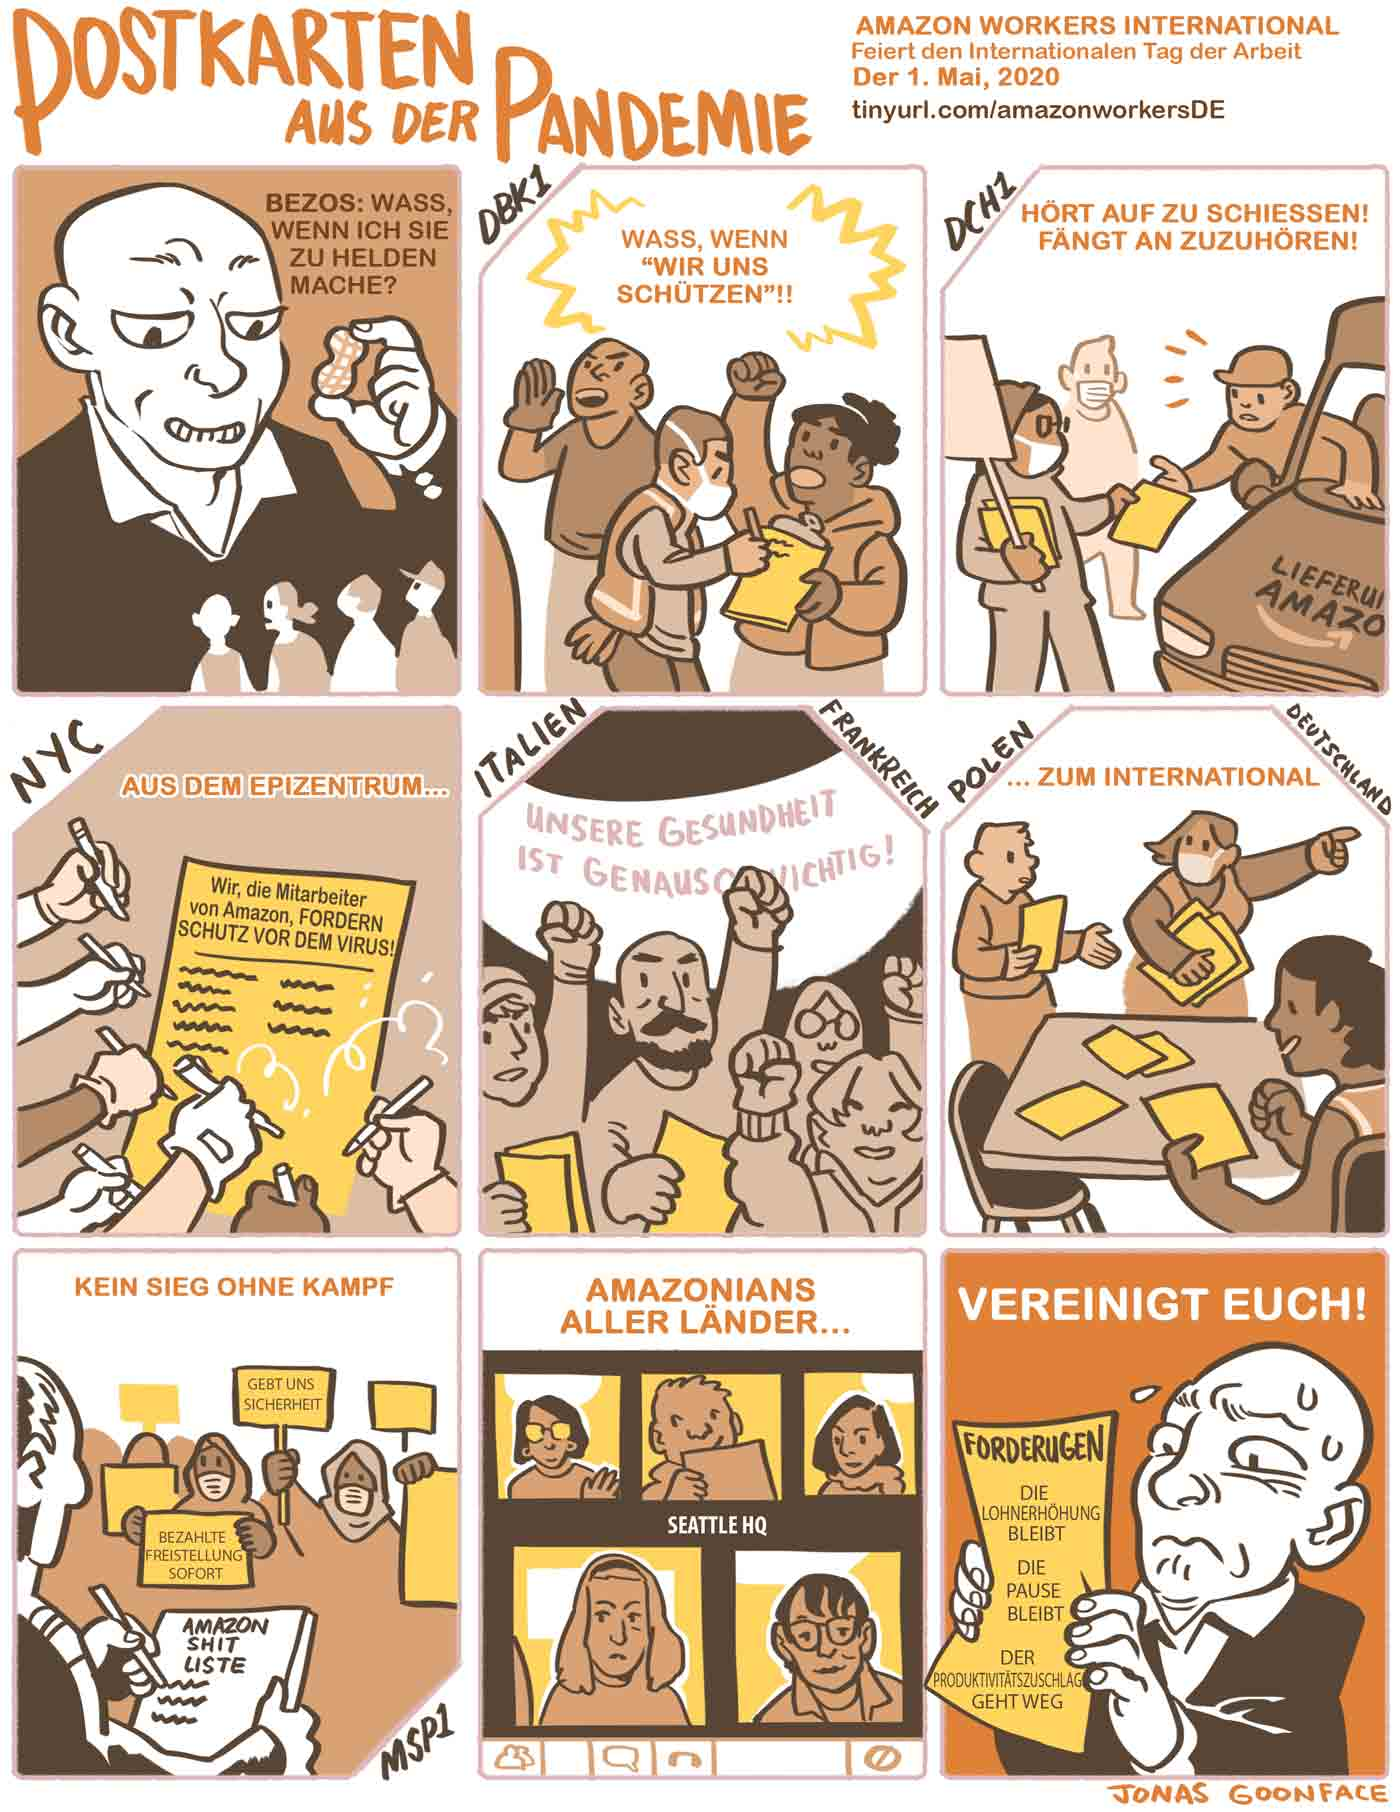 """Comic in German entitled """"Postcards from the Pandemic"""" for Amazon Workers International. Jeff Bezos offers workers the 'peanut' of calling the workers heroes. The workers counter with demands for safety. Amazonians of the World, Unite!"""